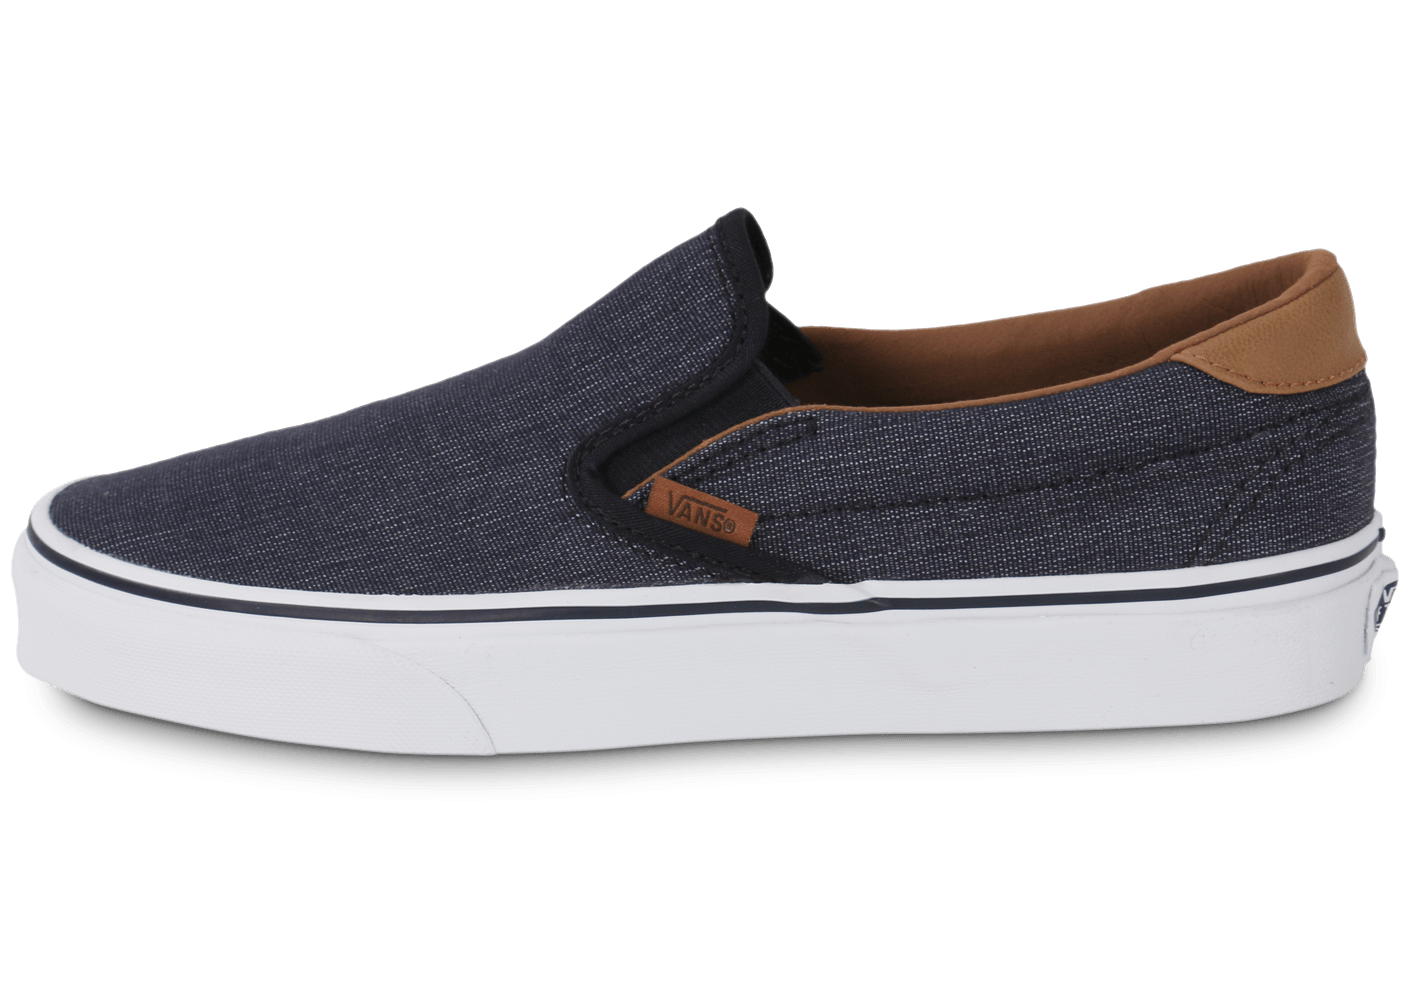 vans slipon homme